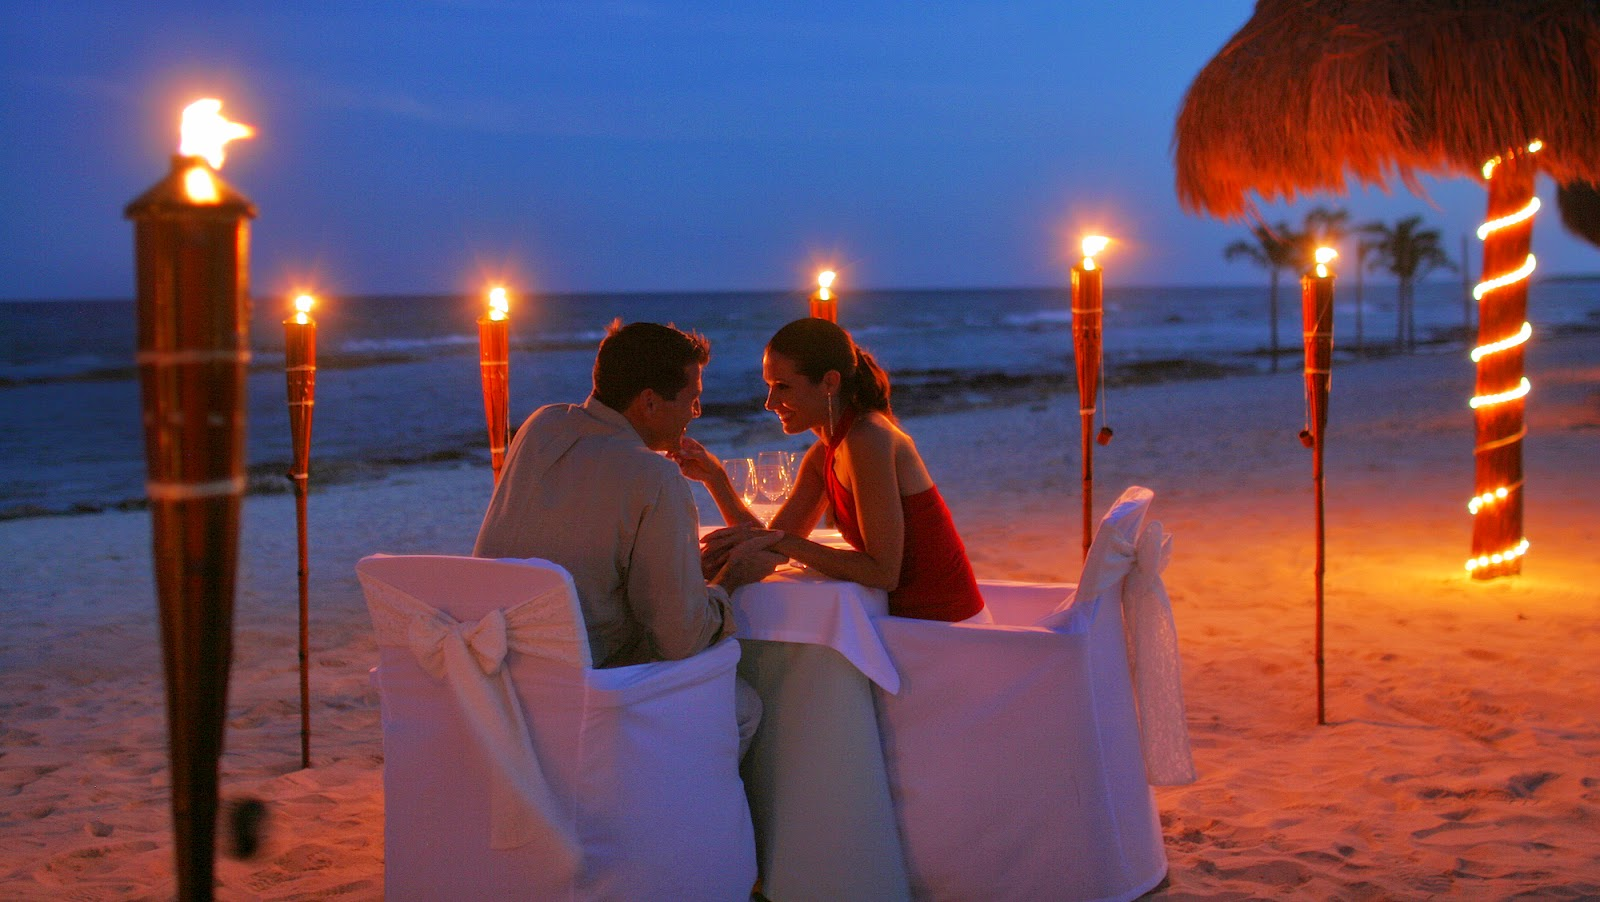 241220142016-couple-dinner-on-the-beach.jpg